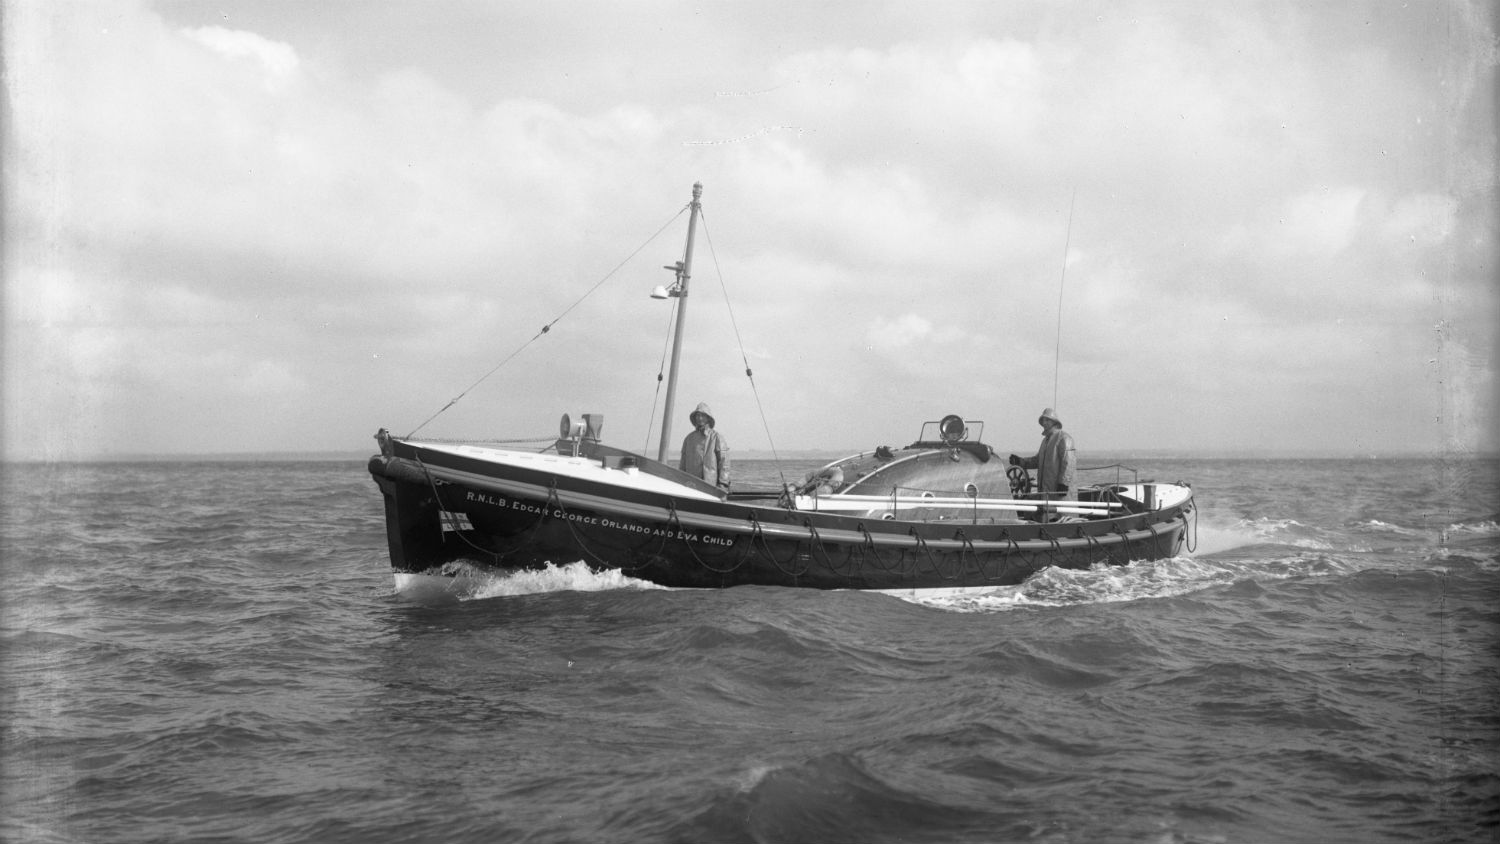 Black and white image of St Ives lifeboat, Edgar George Orlando and Eva Child, while on trials